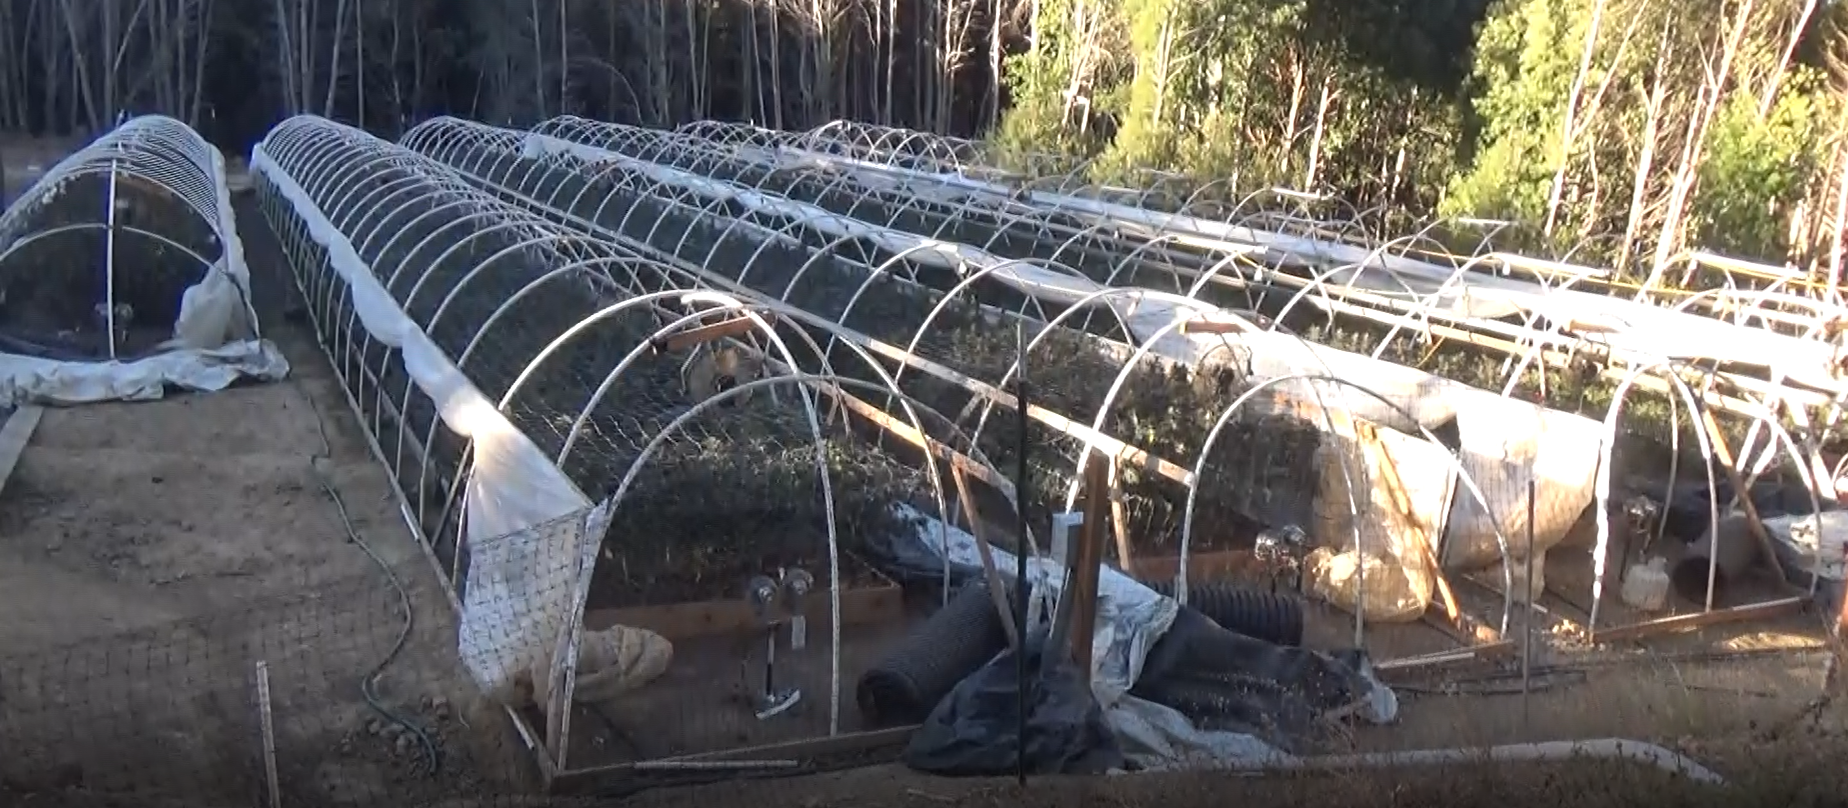 Line of greenhouses growing cannabis